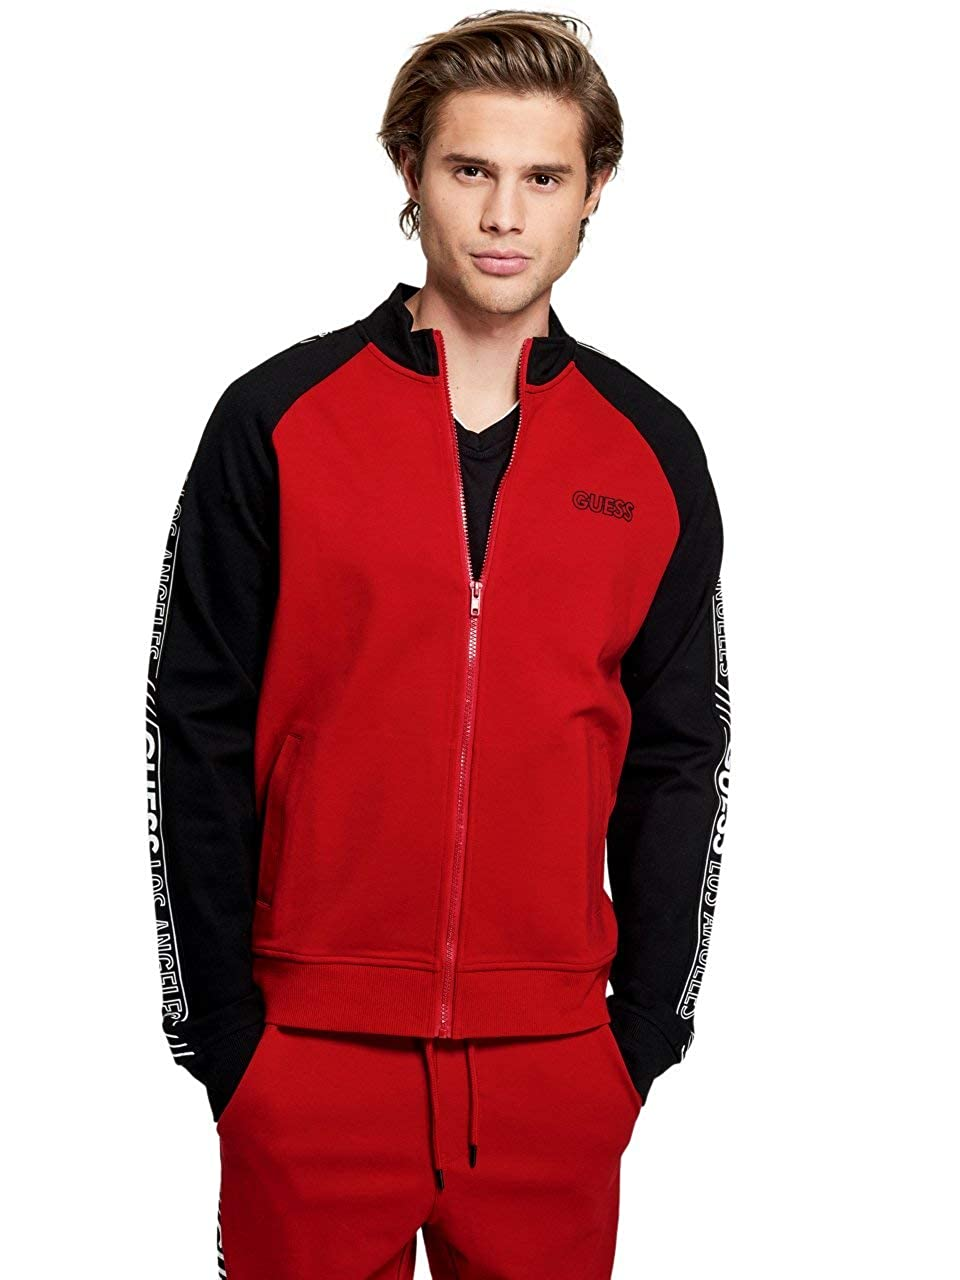 Amazon.com: GUESS Factory - Chaqueta para hombre con ...